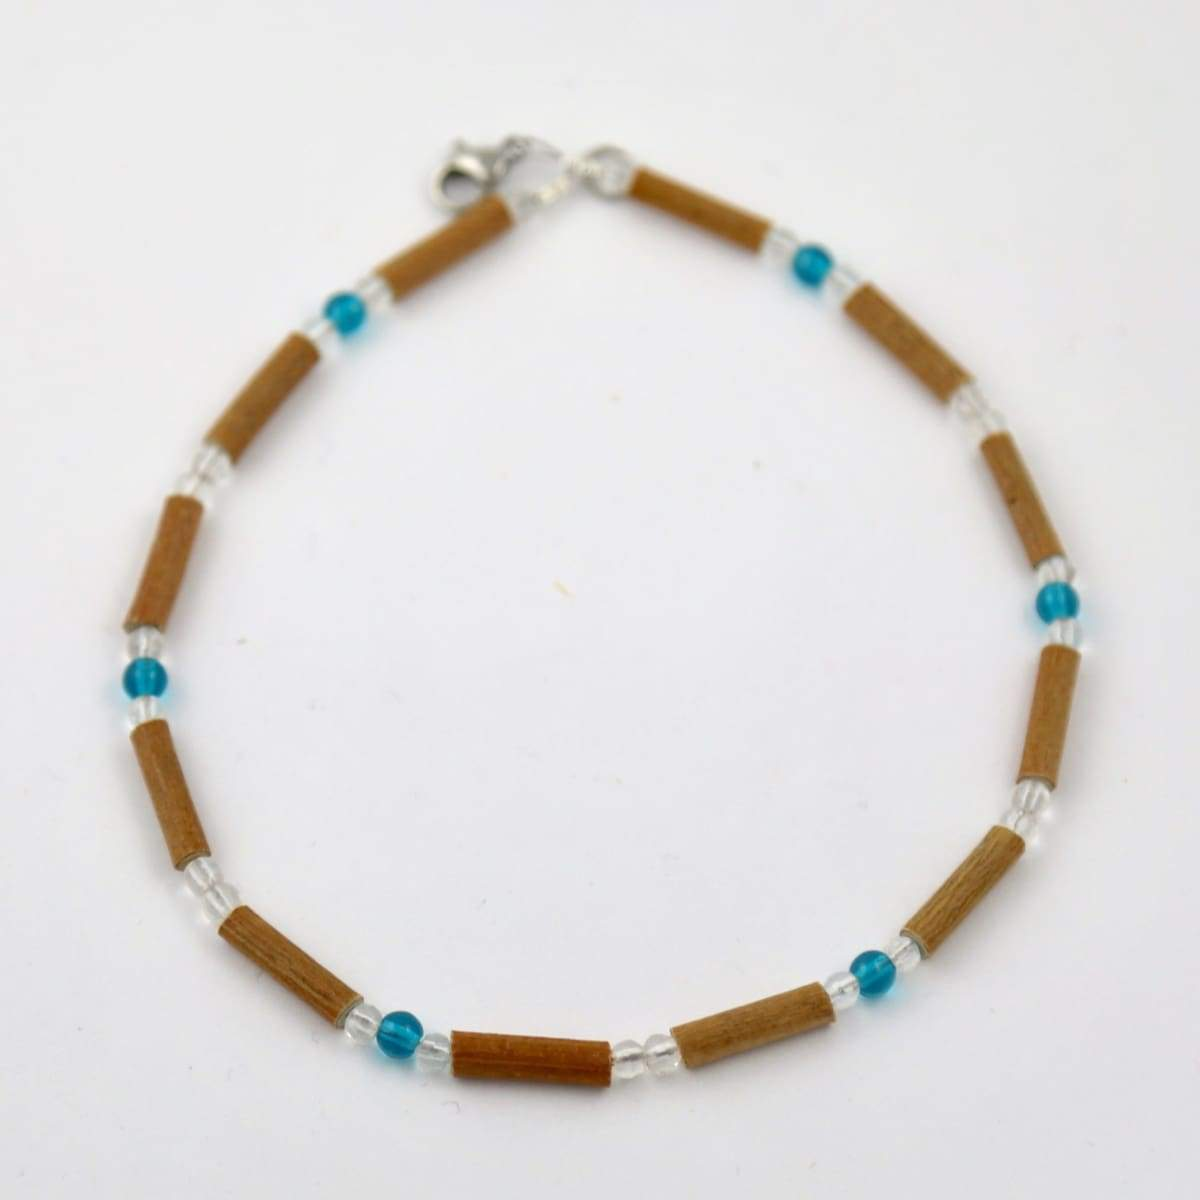 Hazelwood Aqua & Clear - 11 Necklace - Barrel Twist Clasp - Hazelwood Jewelry